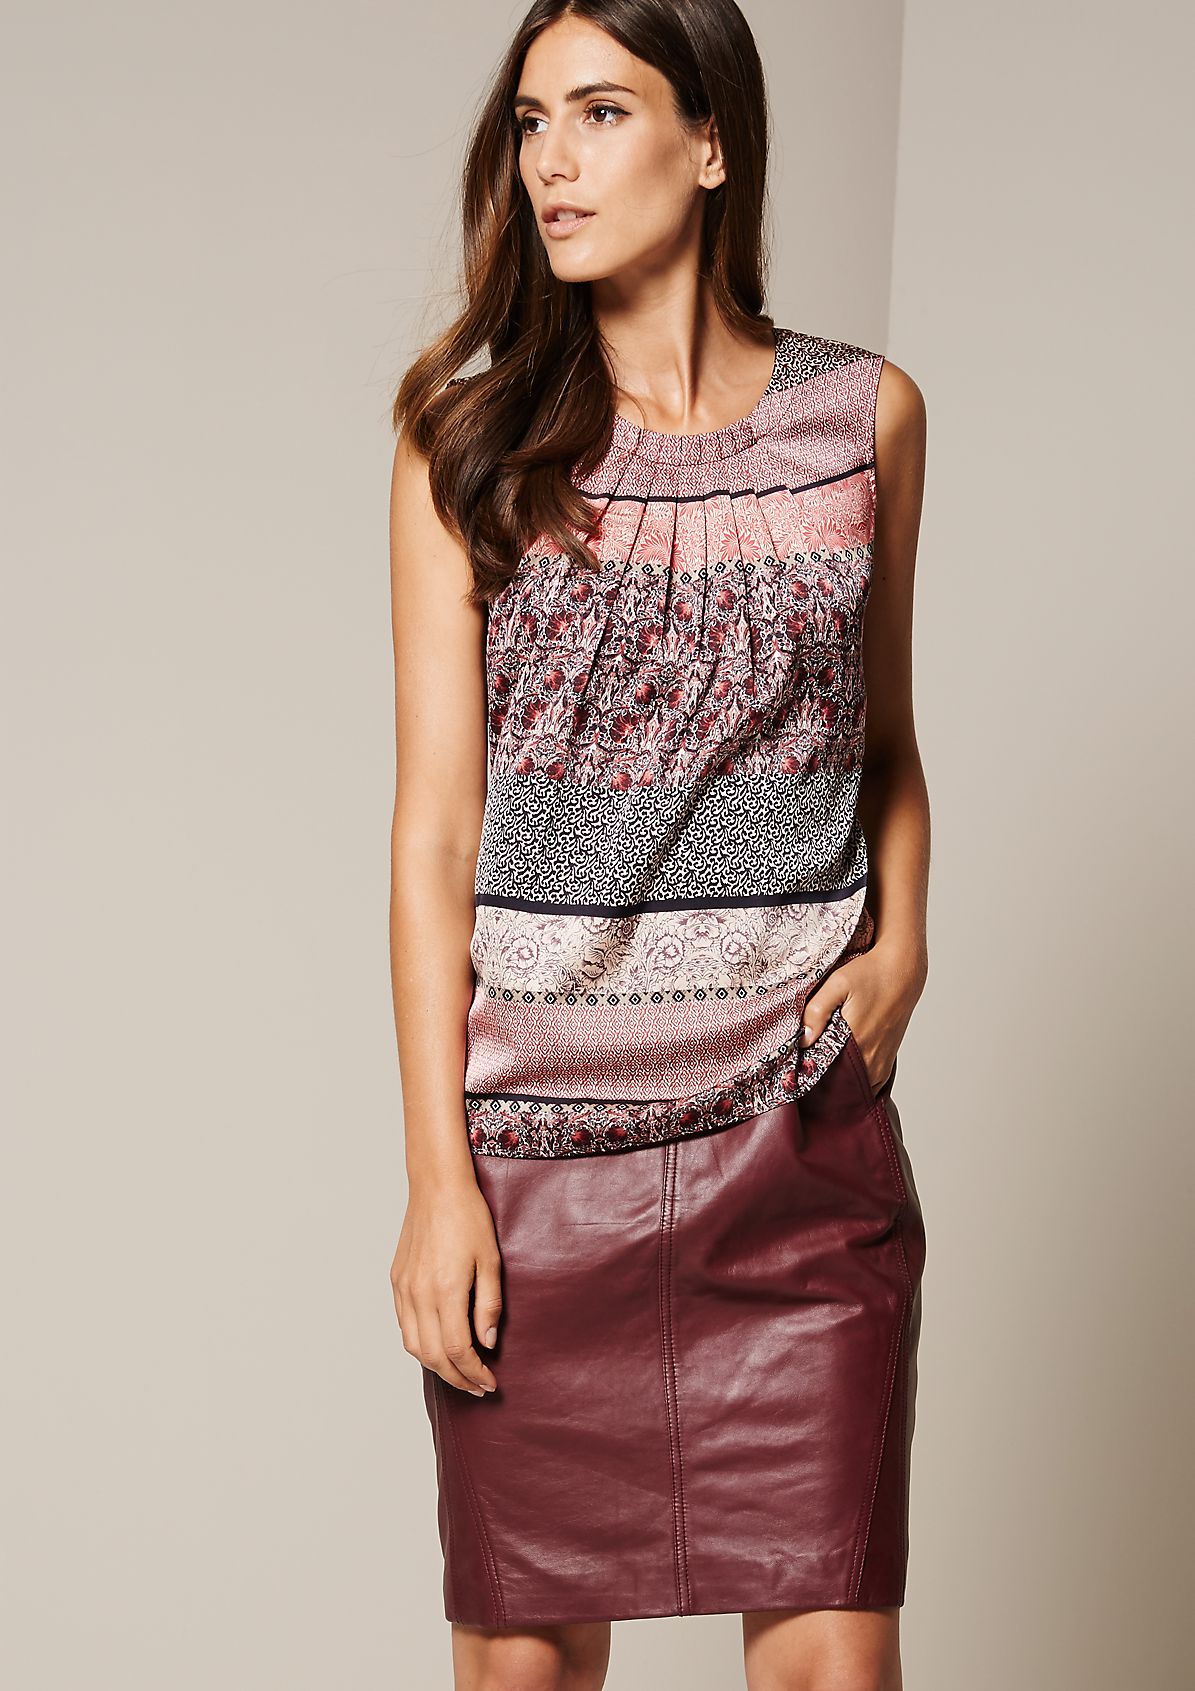 Satin top with a subtle sheen and decorative pleats from s.Oliver